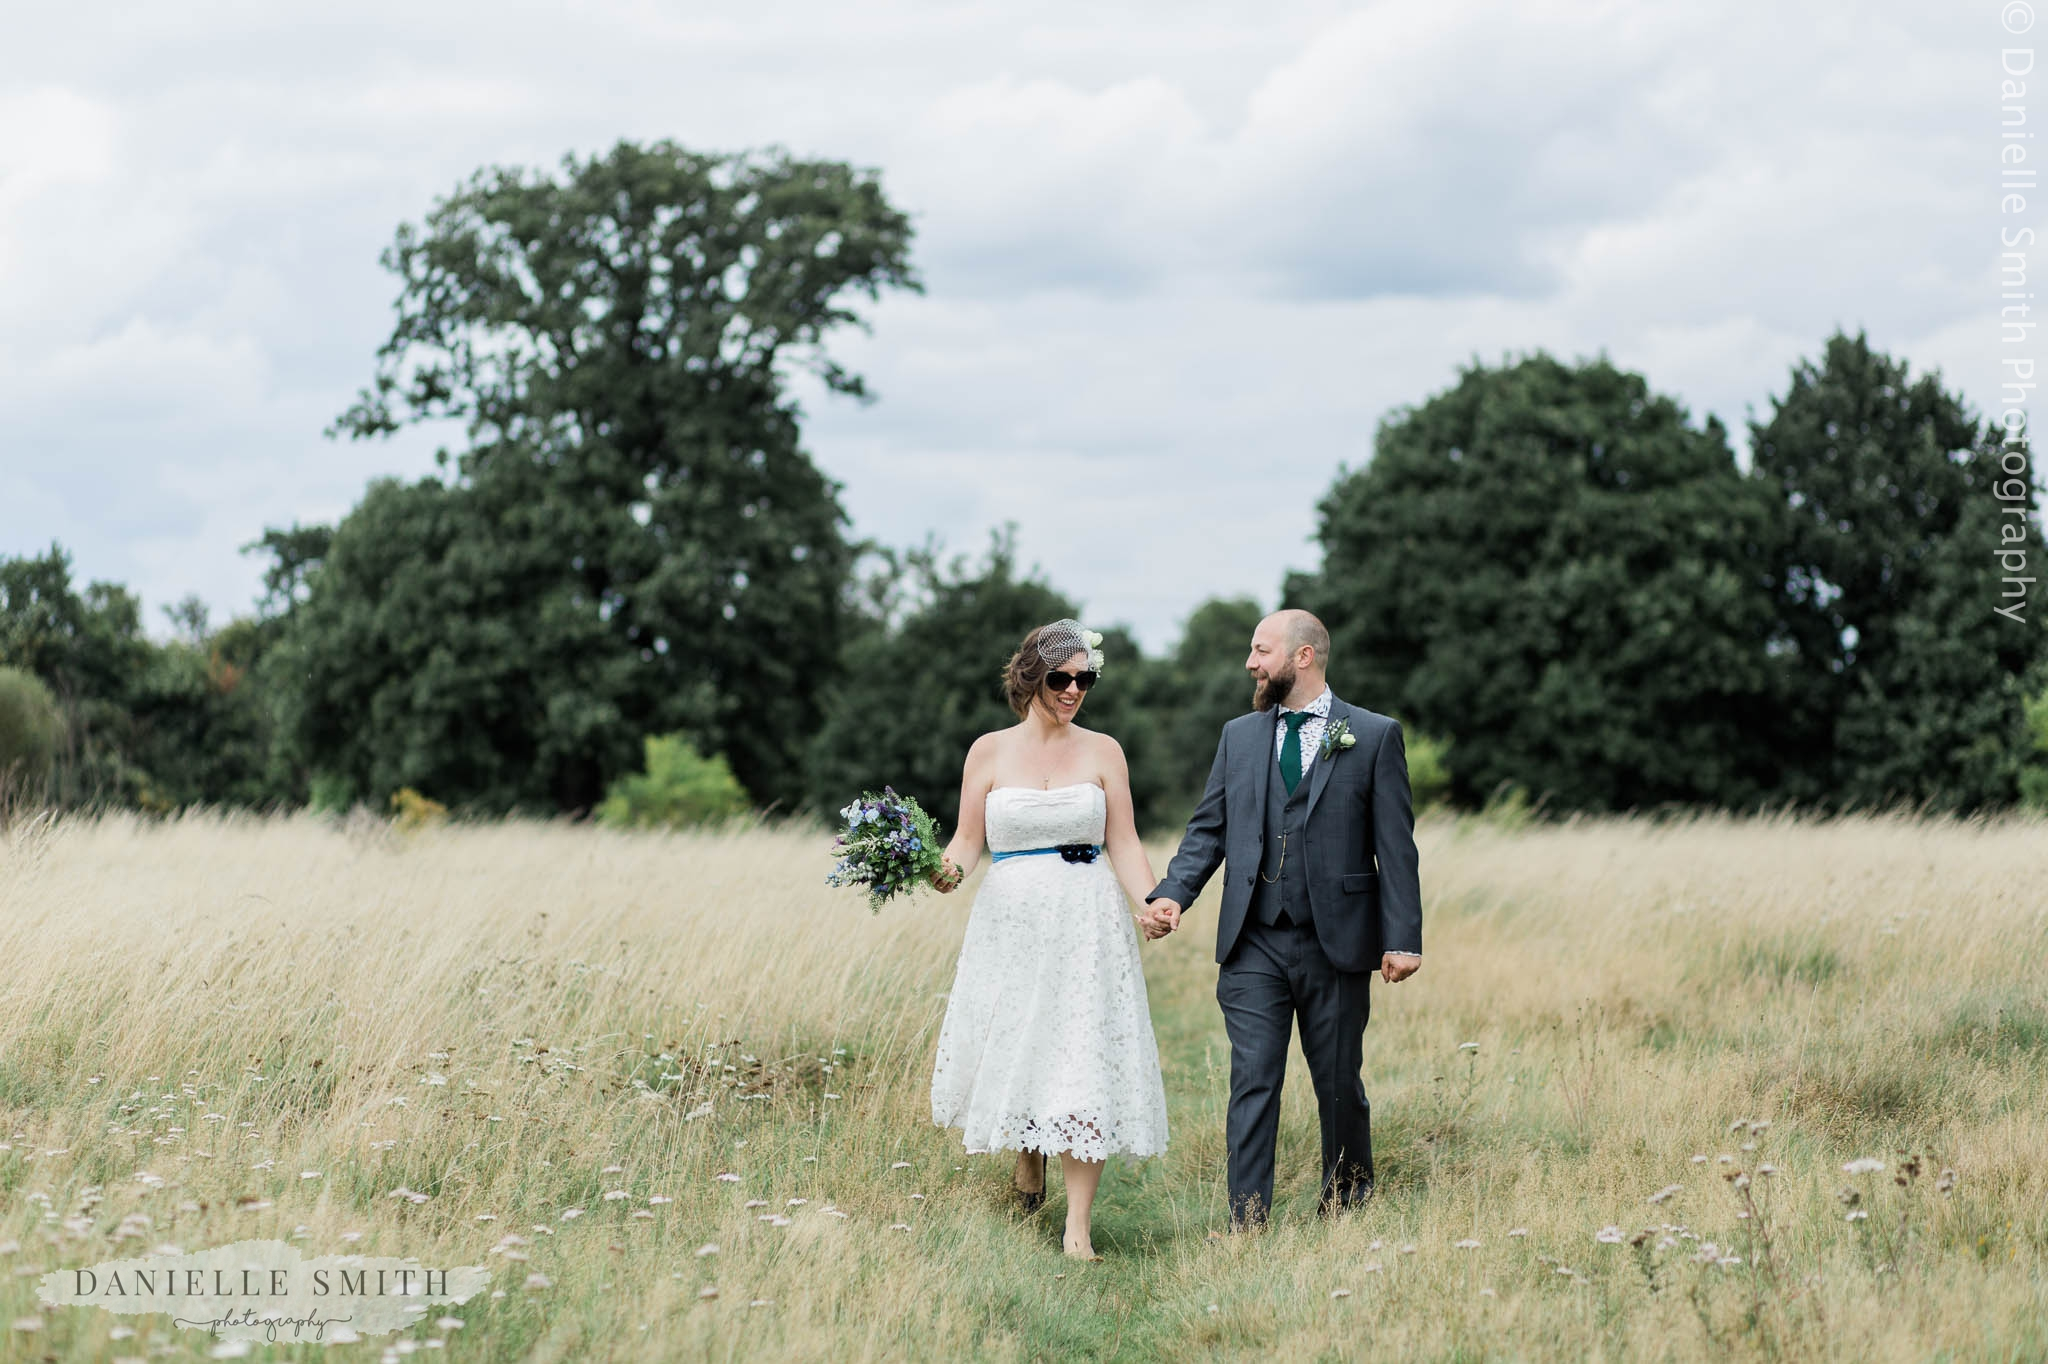 bride and groom walking in park - east london wedding